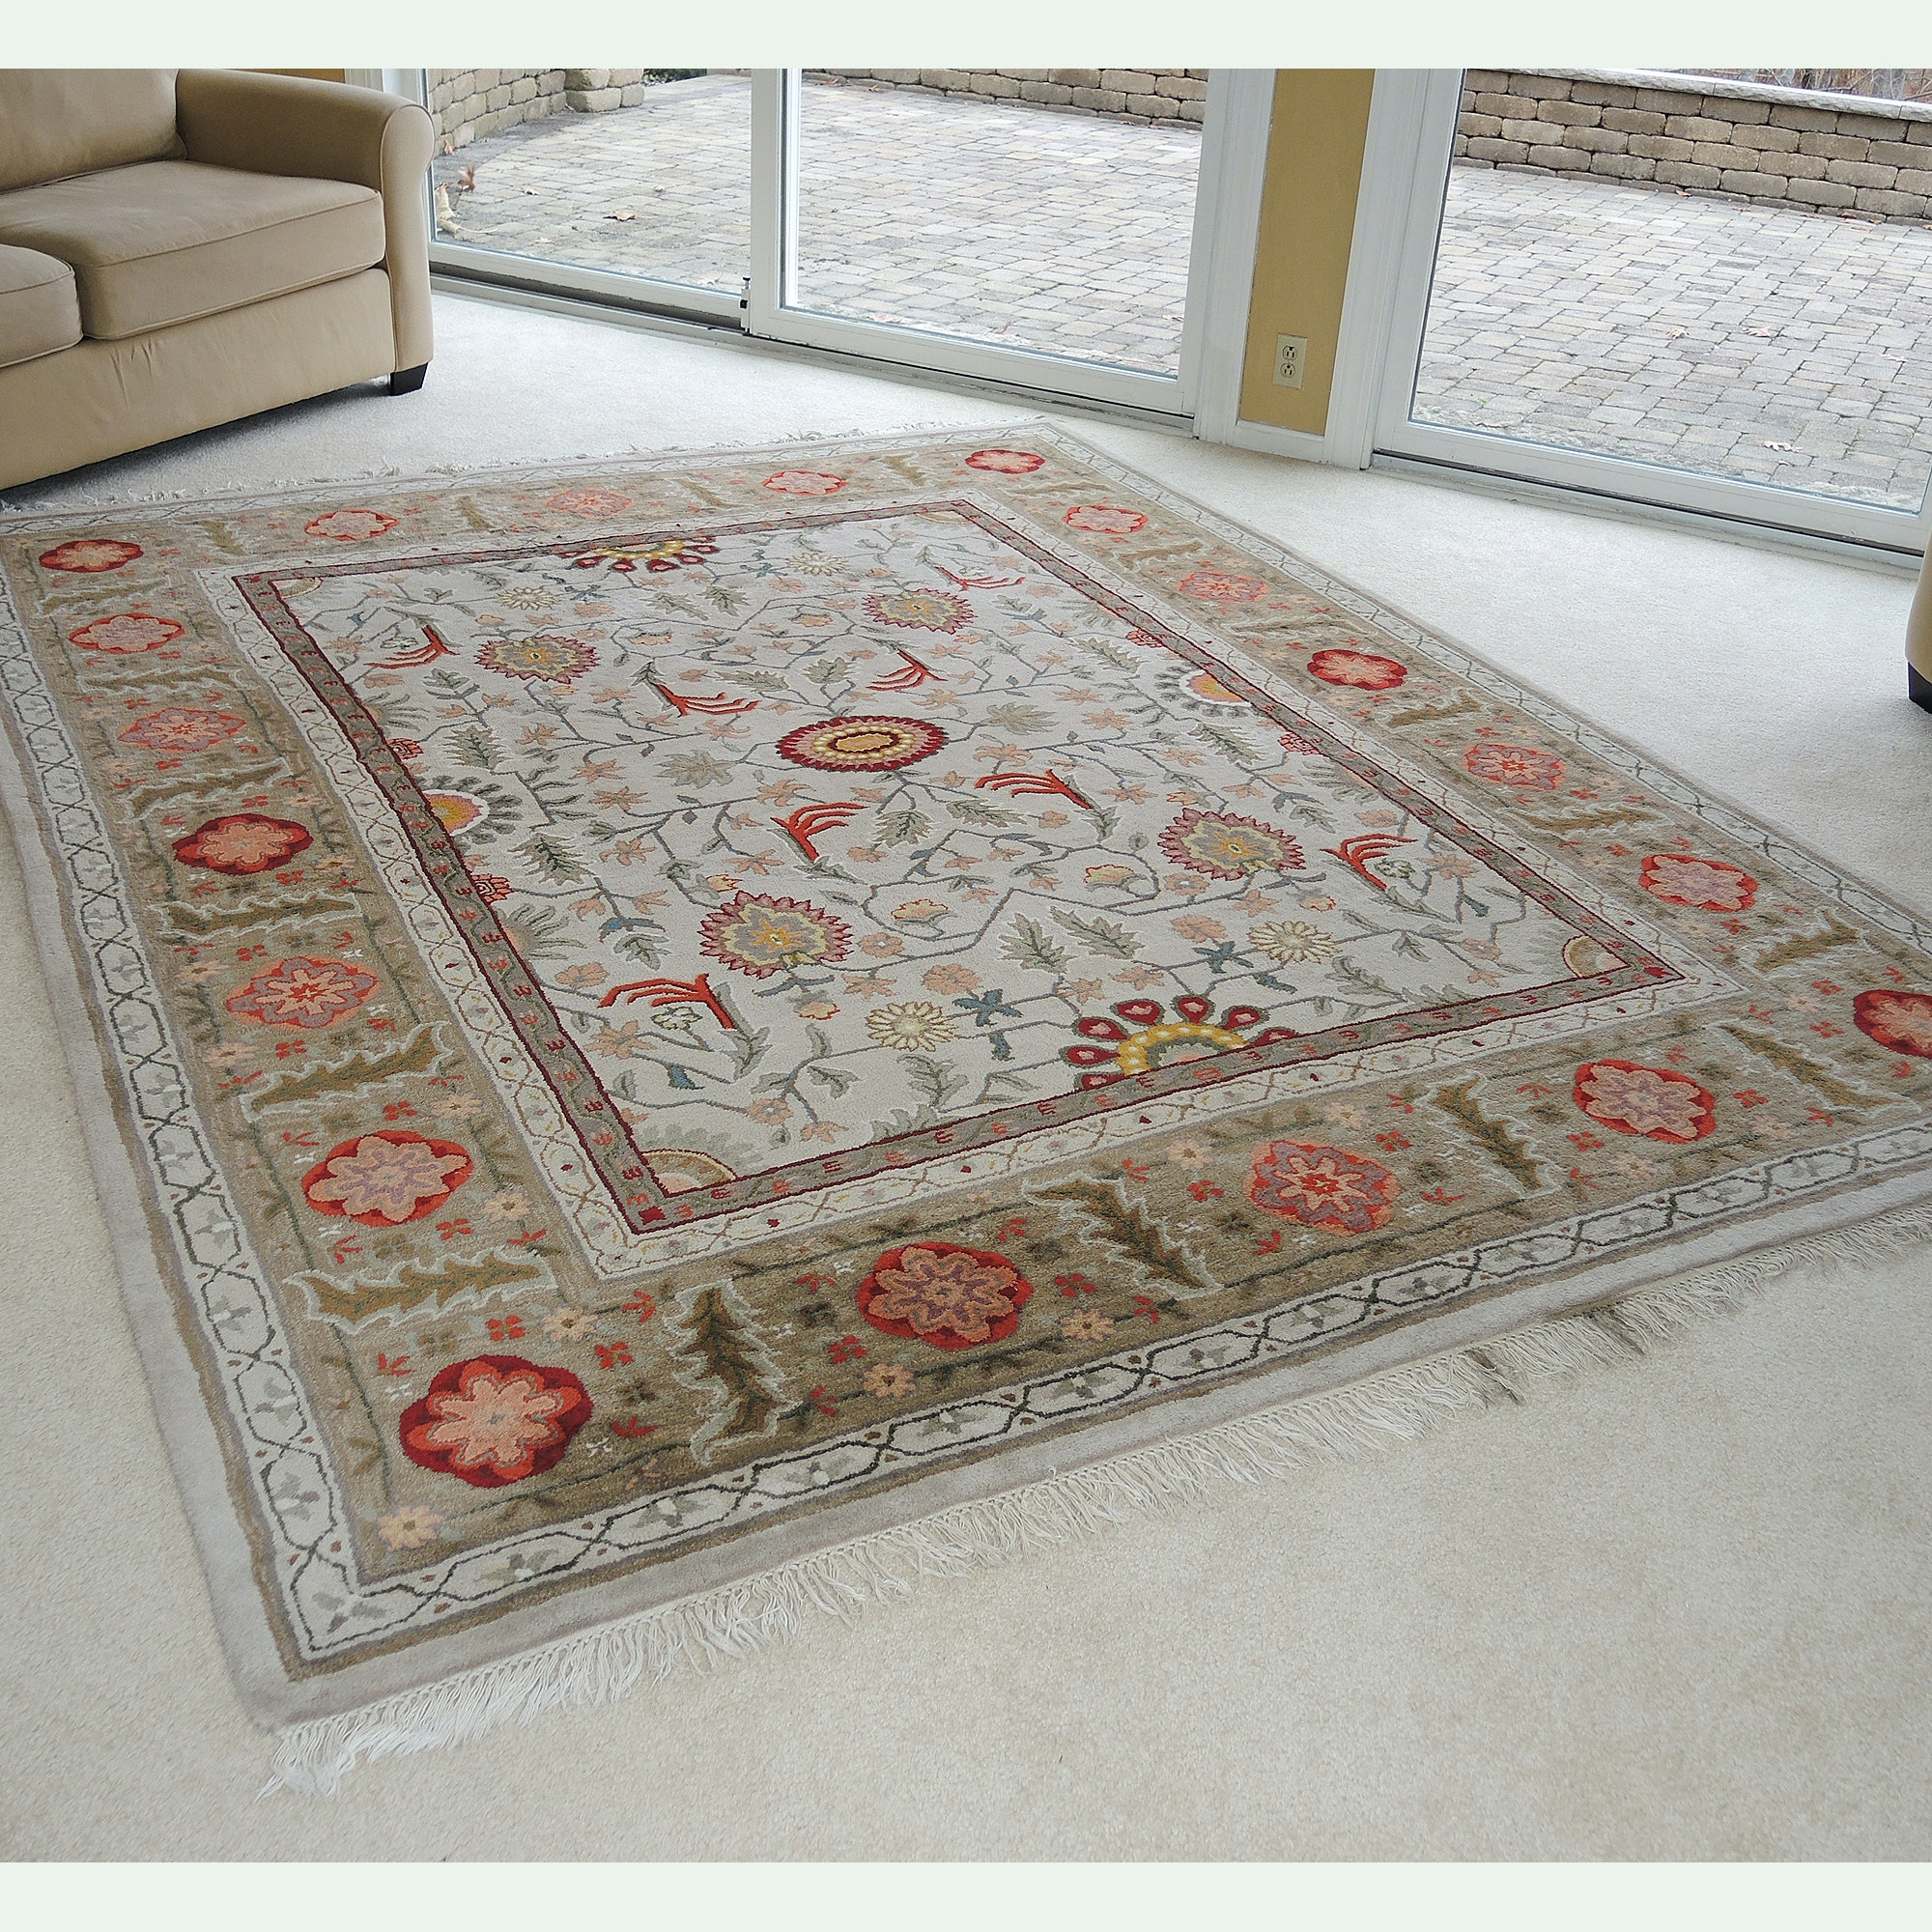 Hand-Tufted Indian Wool Area Rug